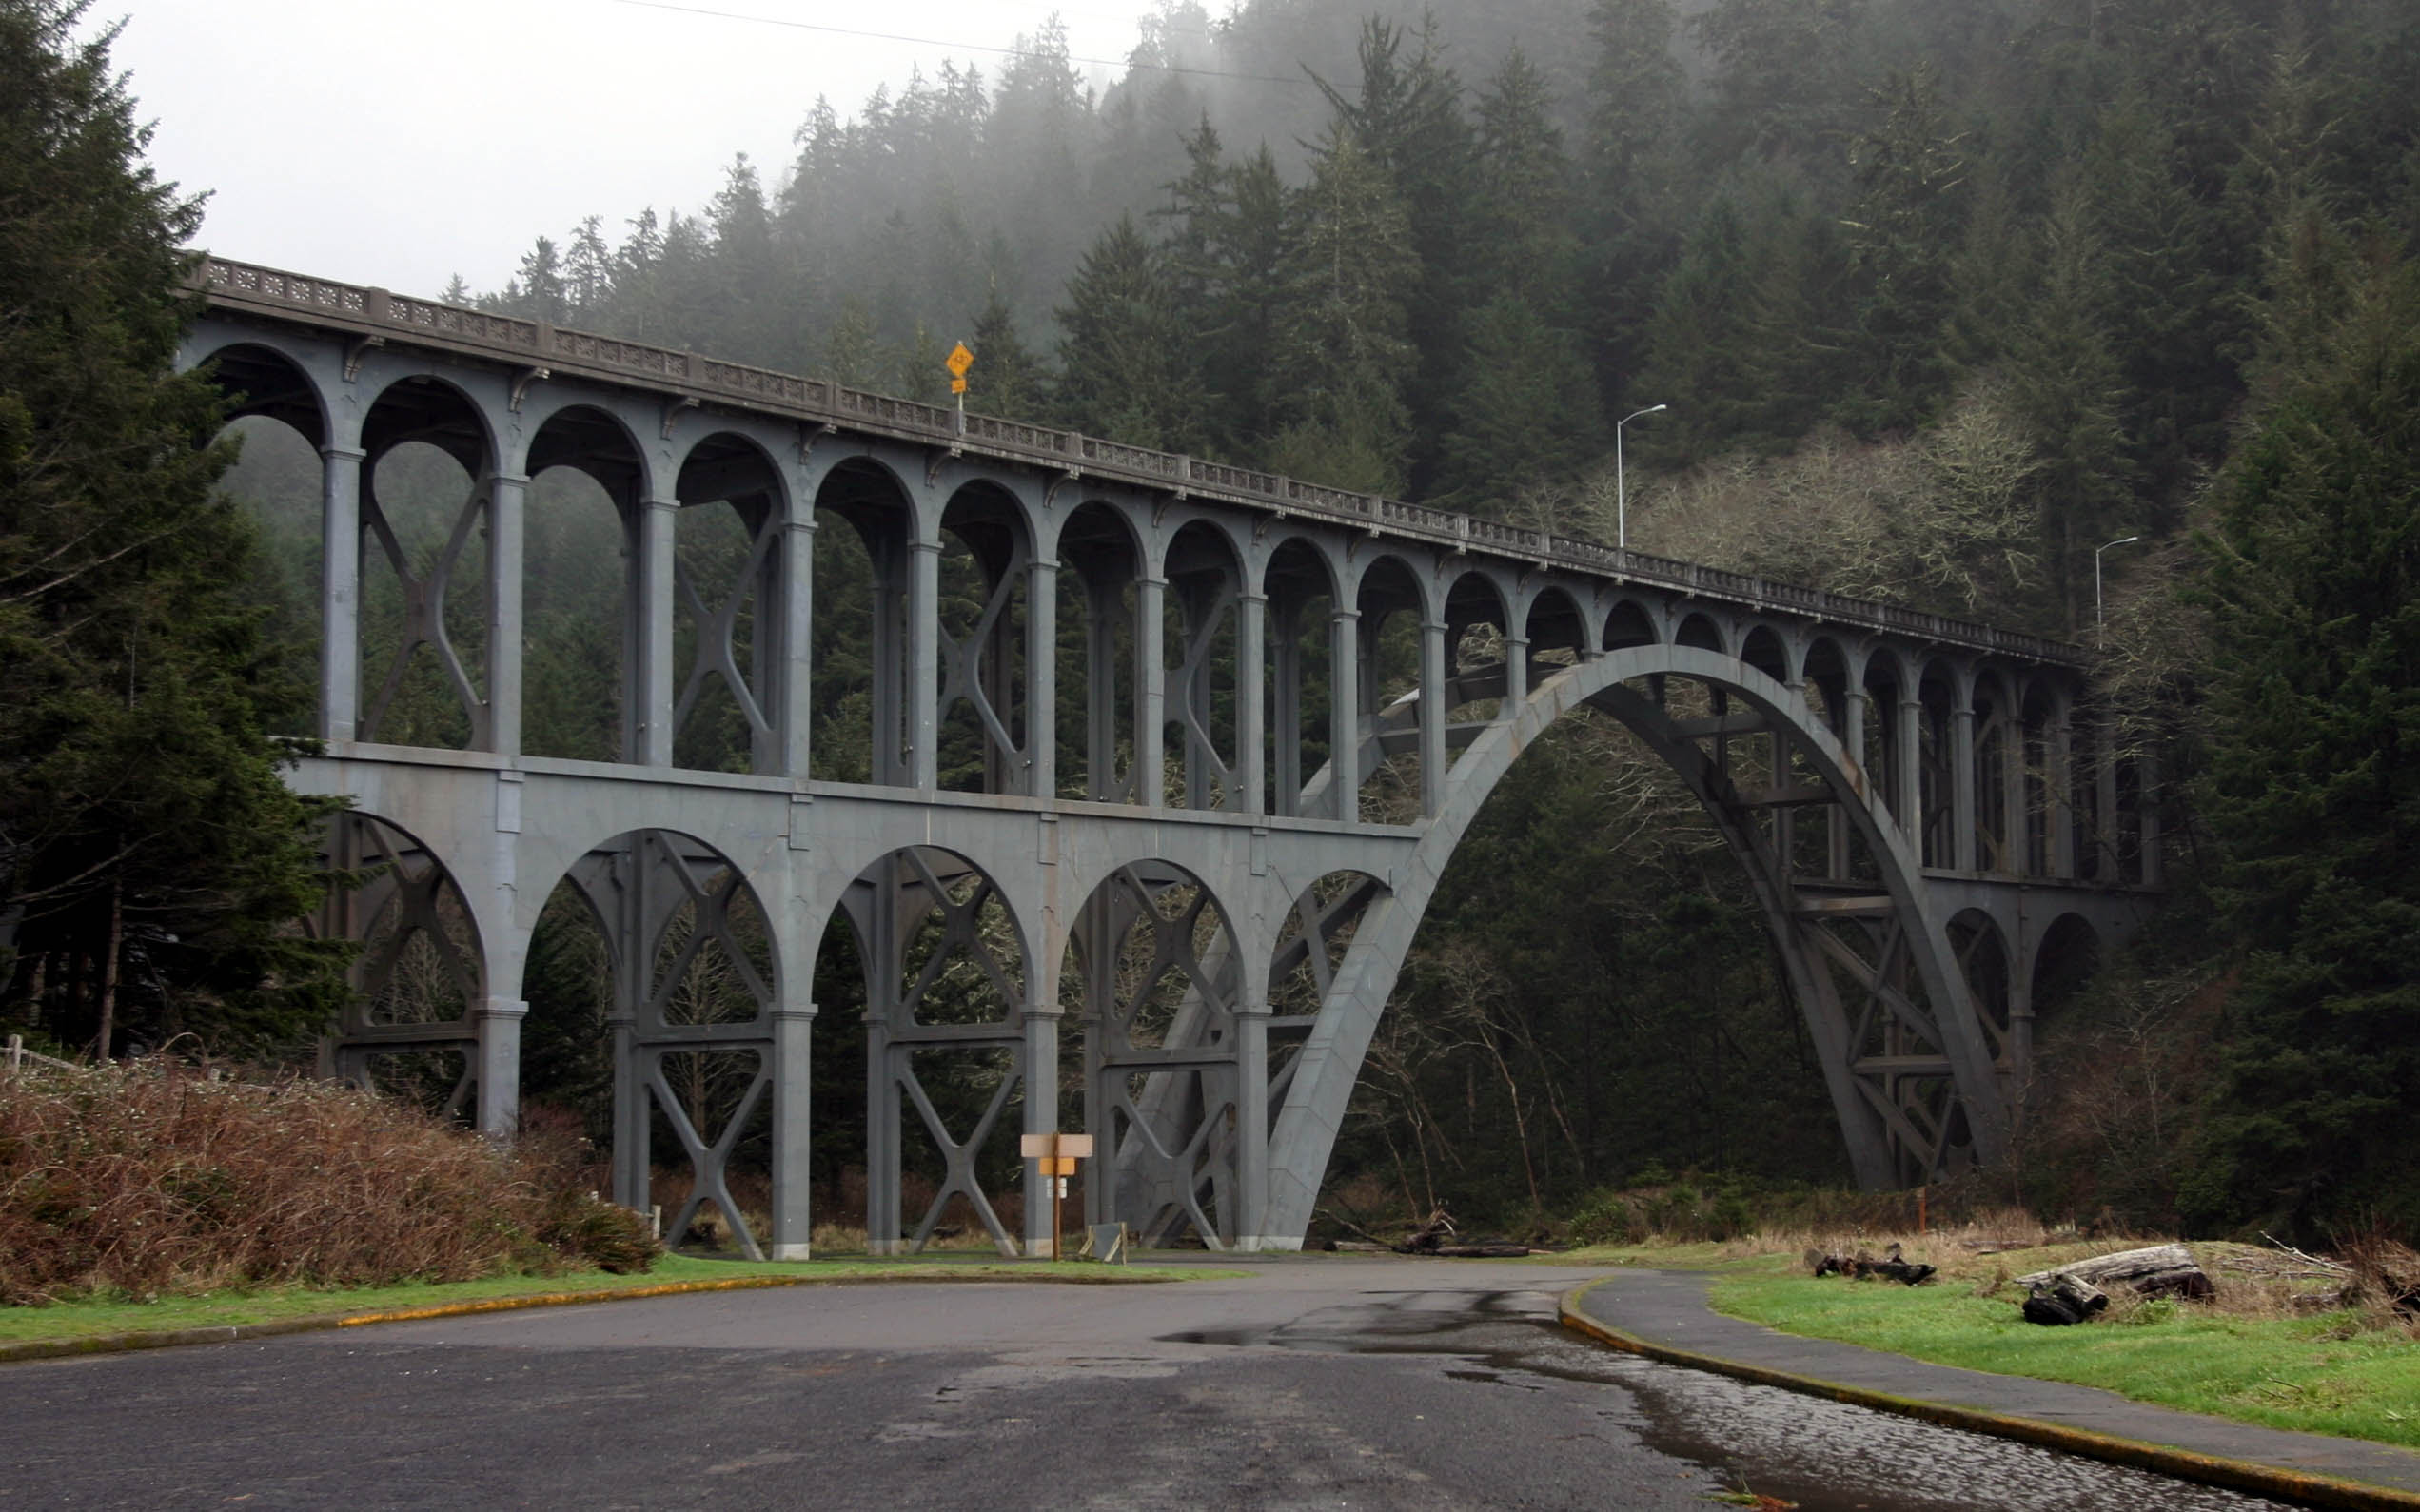 Cape Creek Bridge, located at the heart of Heceta Head Lighthouse Scenic Viewpoint, is the first bridge in the world to have zinc thermal sprayed over the entire structure.[5]